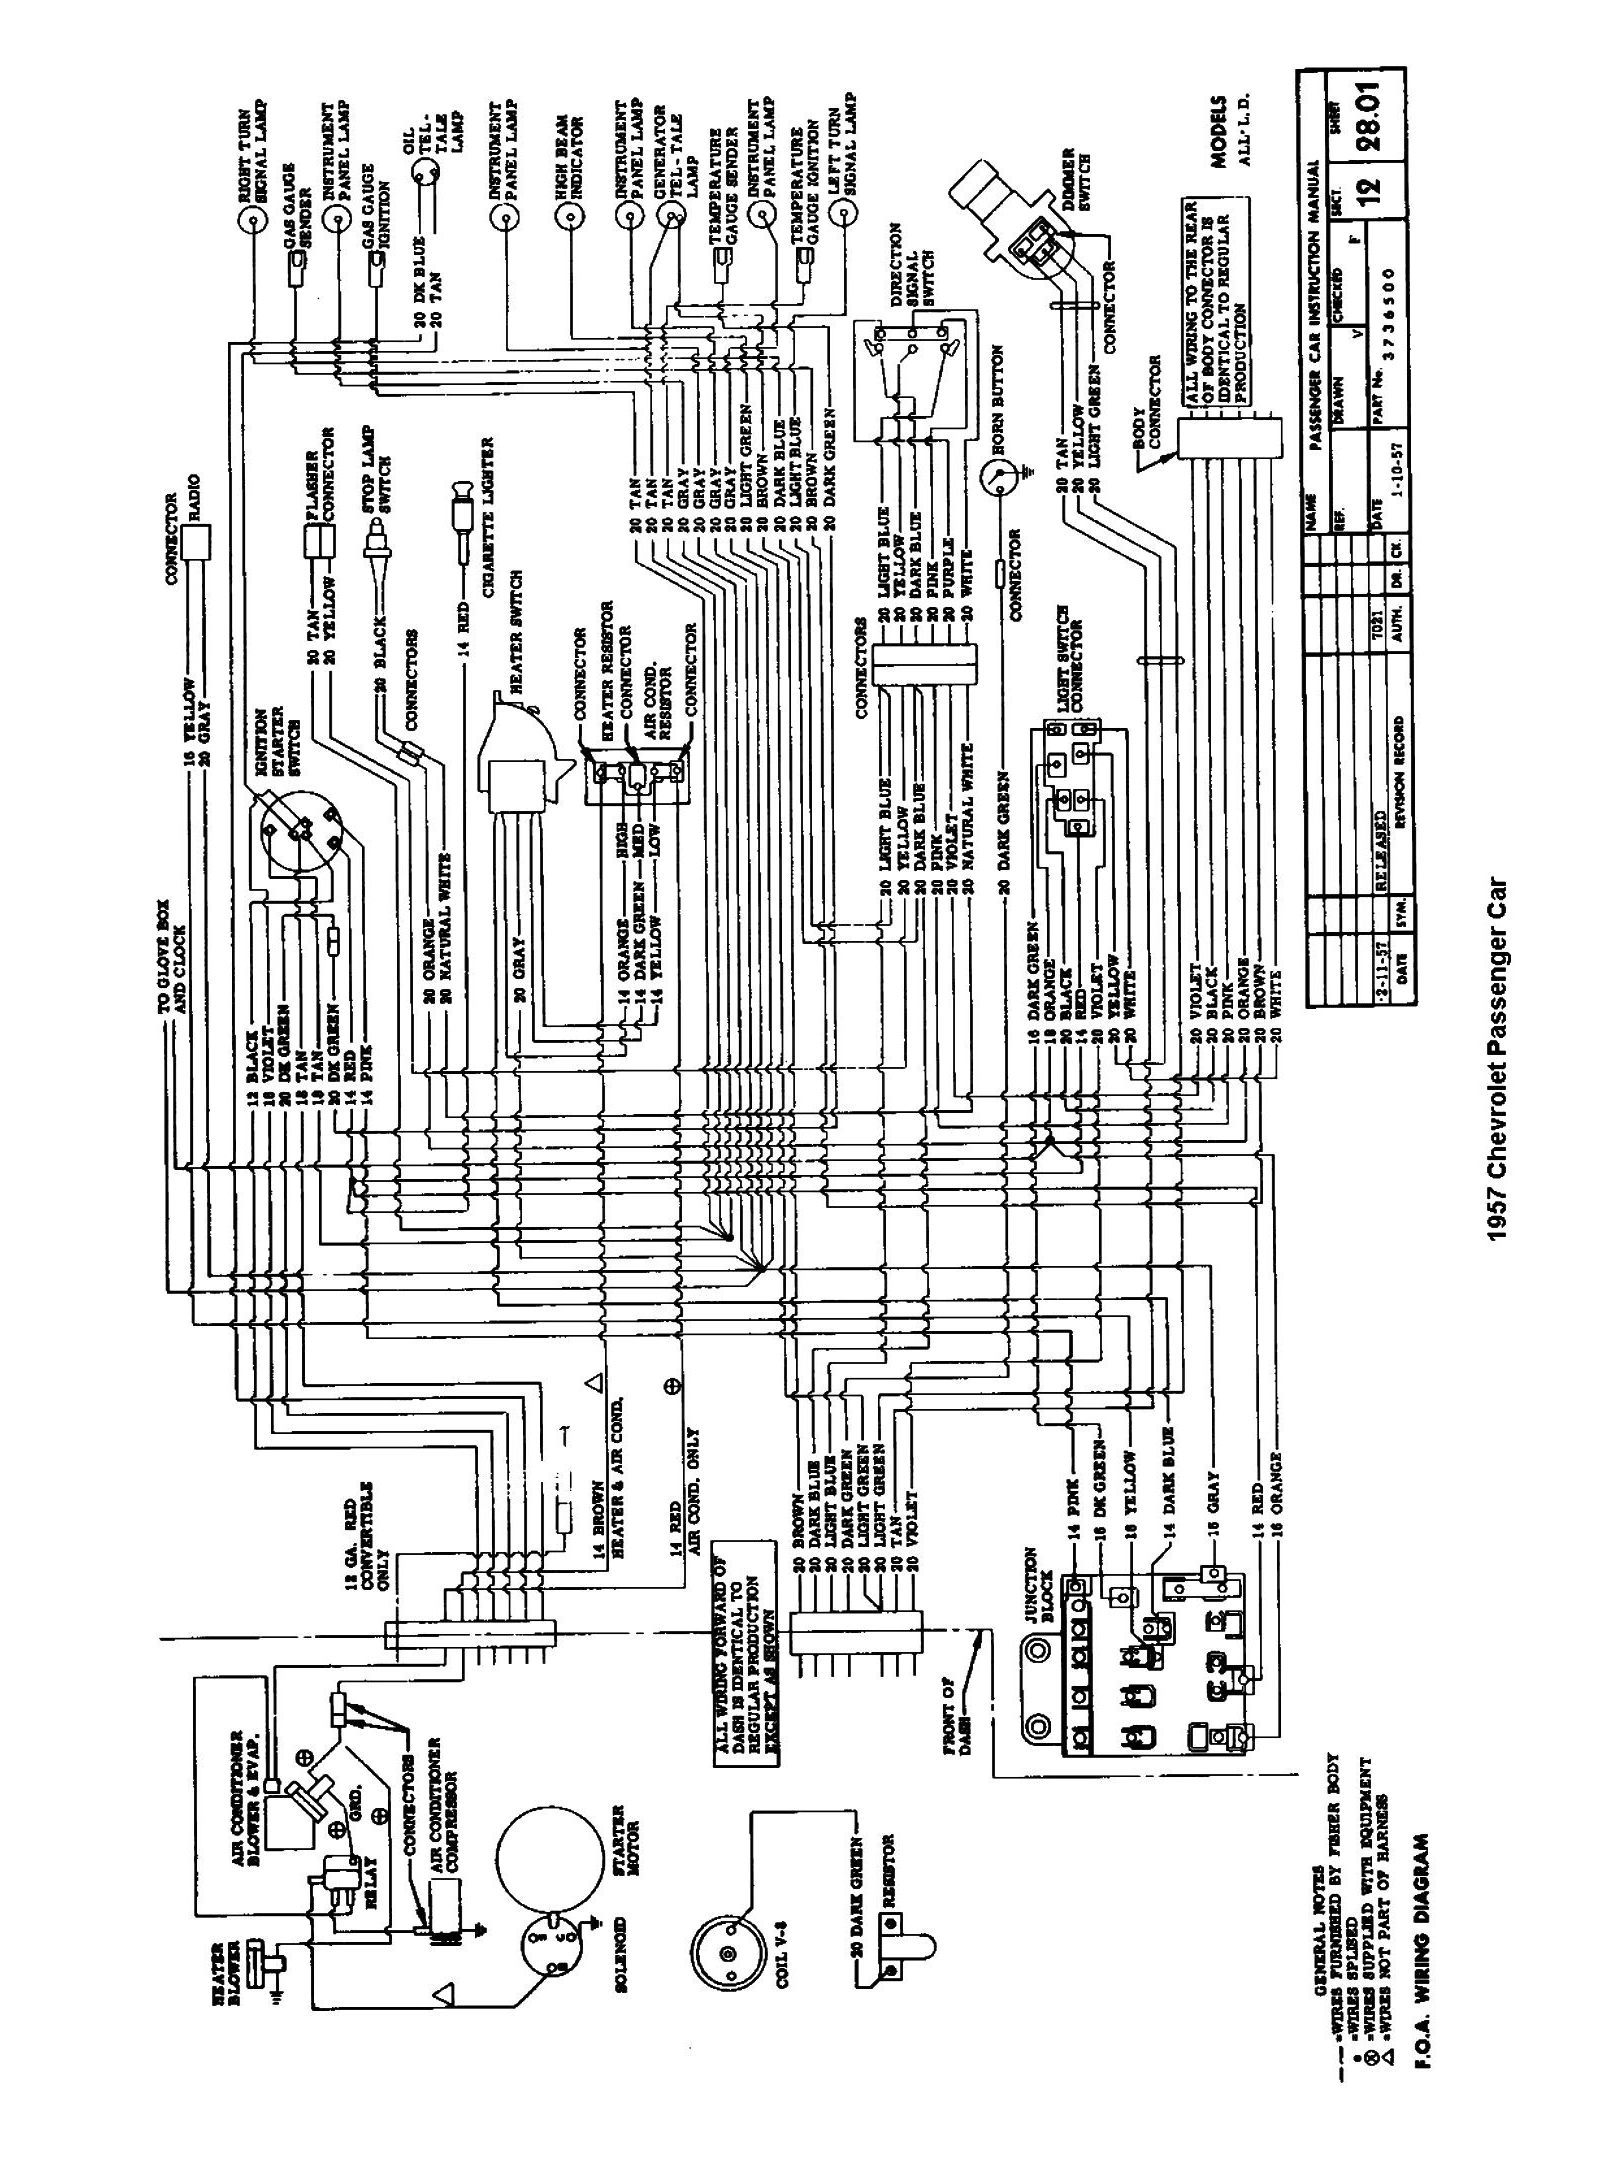 Chevy Wiring Diagrams Light Switch Diagram For 1989 Club Car 1957 Passenger 2